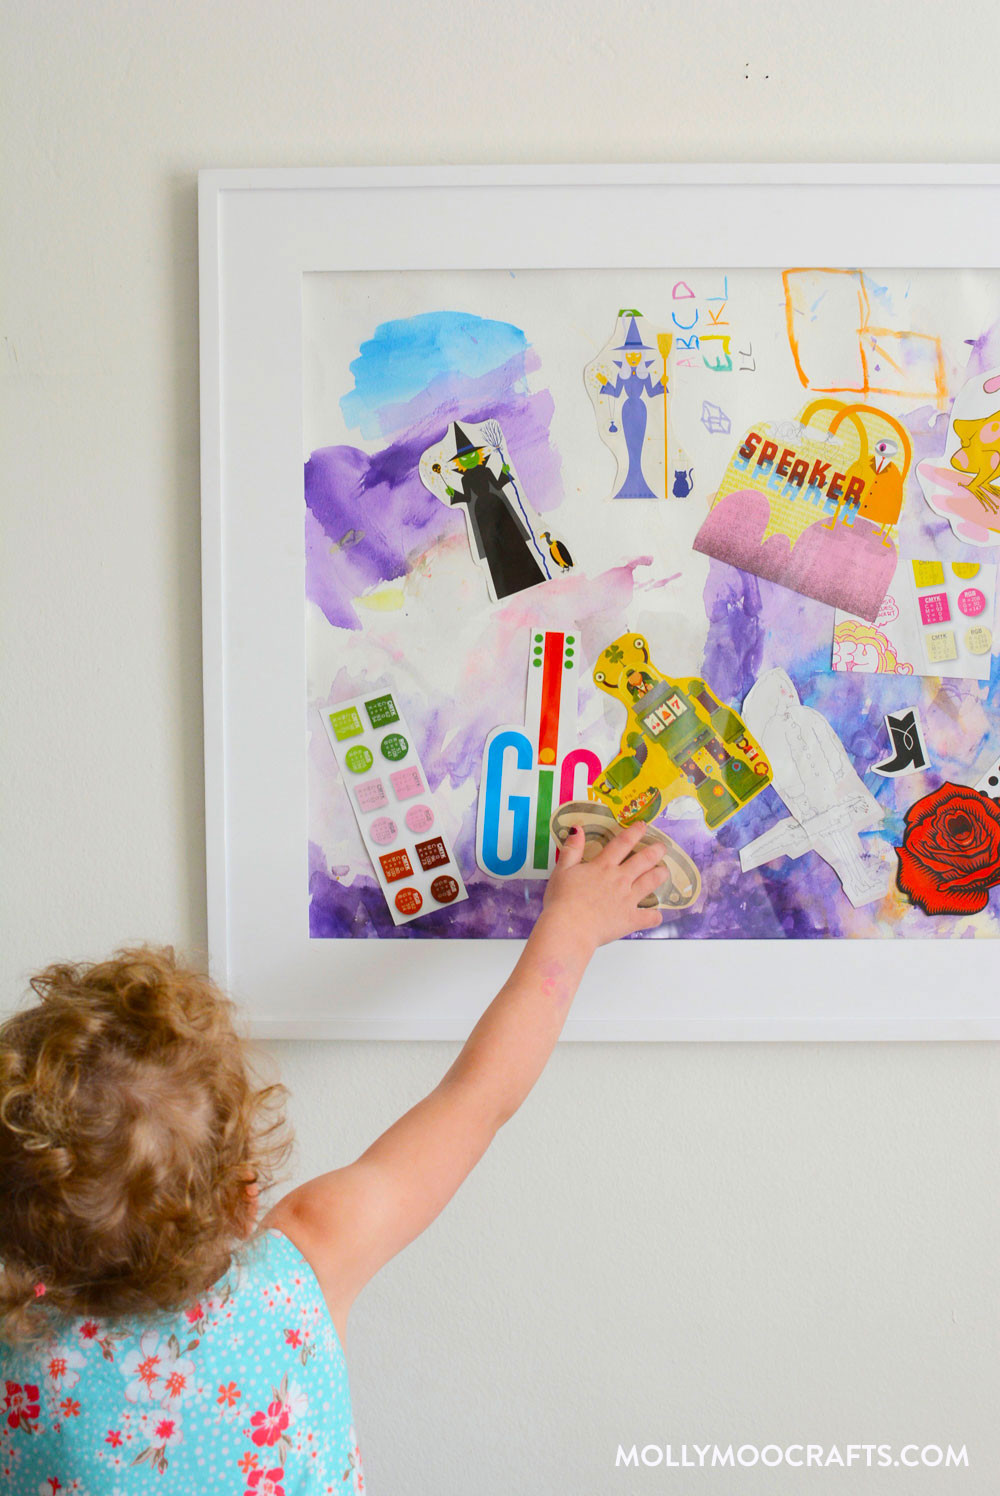 Best ideas about Kids Art Projects . Save or Pin MollyMooCrafts Fun Art Project For Kids Mixed Media Collage Now.